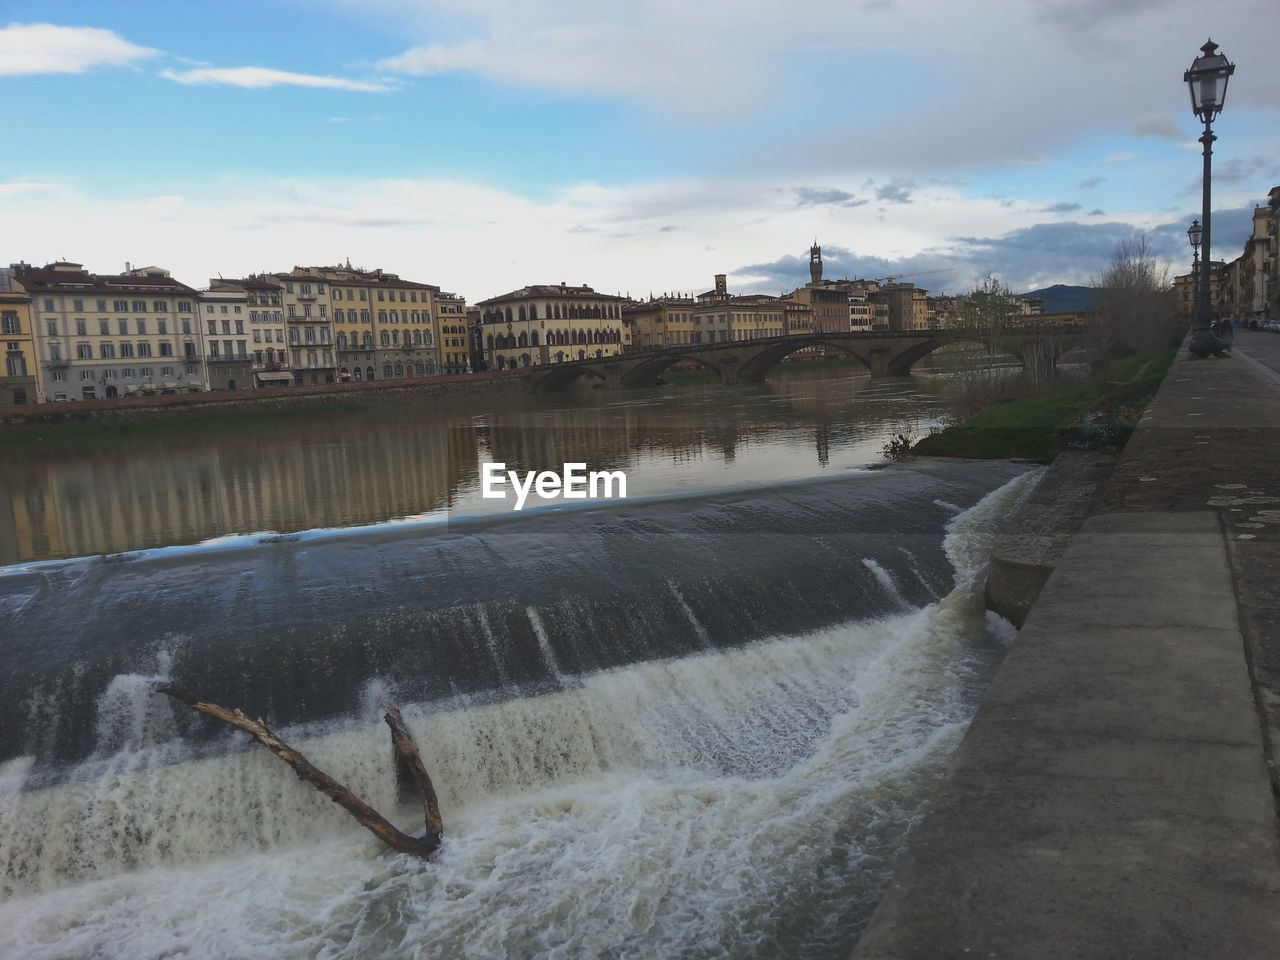 architecture, built structure, water, hydroelectric power, dam, building exterior, sky, motion, fuel and power generation, river, outdoors, day, no people, nature, city